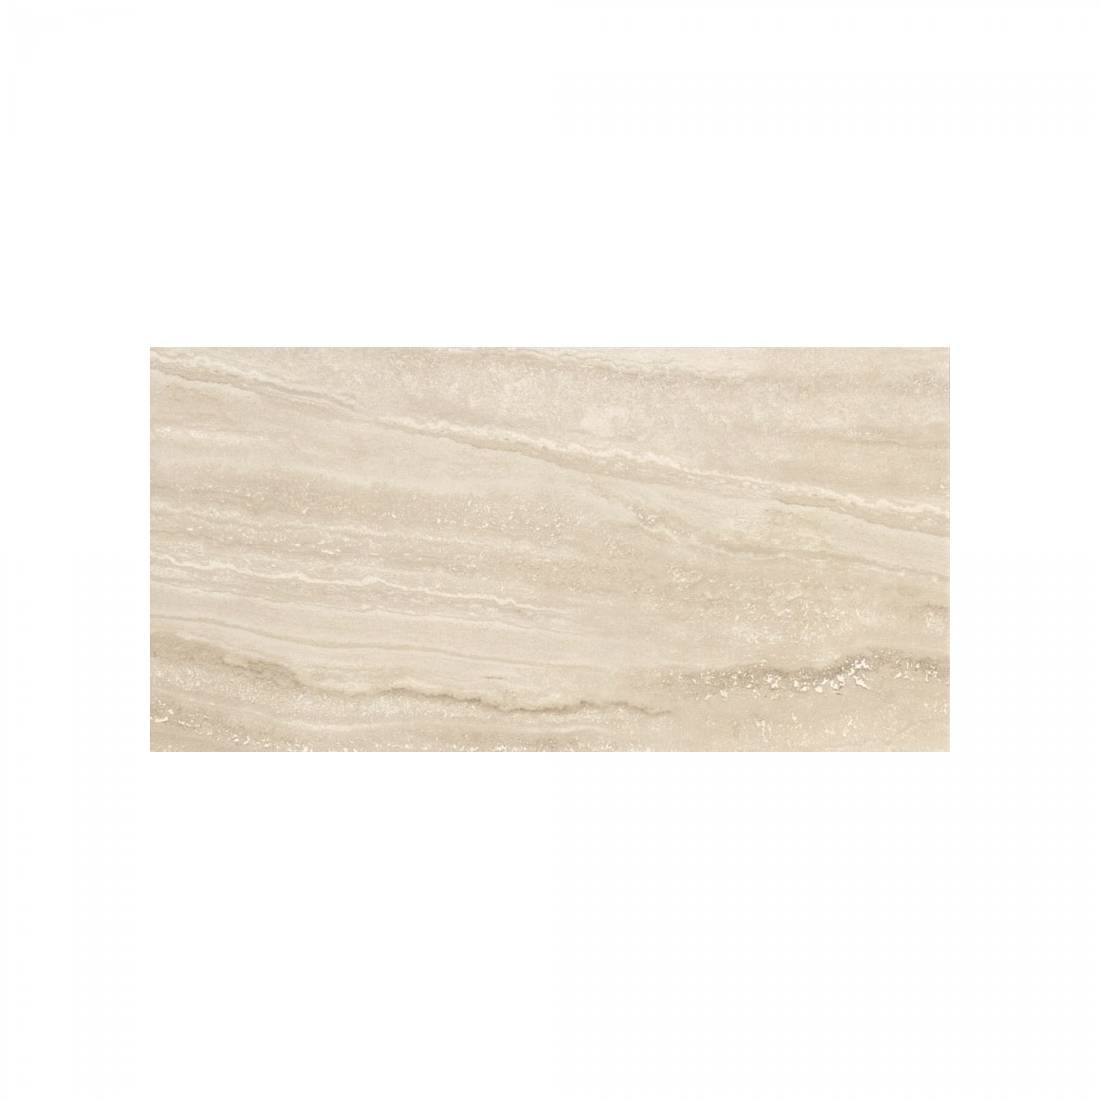 Travertino Navona 30x60 Cream Matt 1